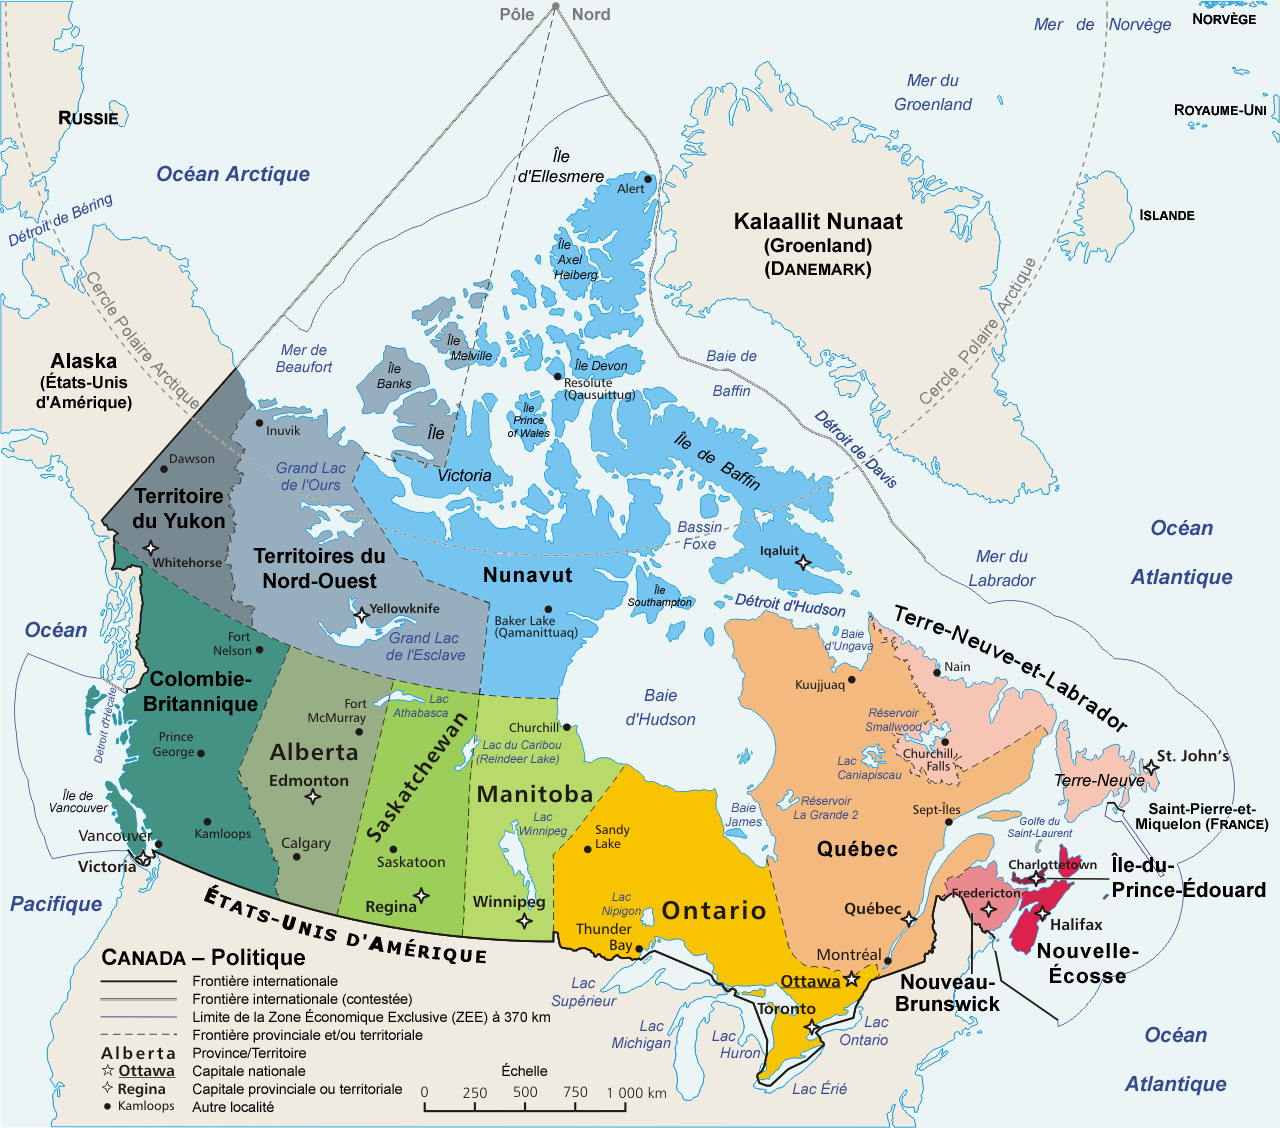 File:Carte administrative du Canada.png - Wikimedia Commons